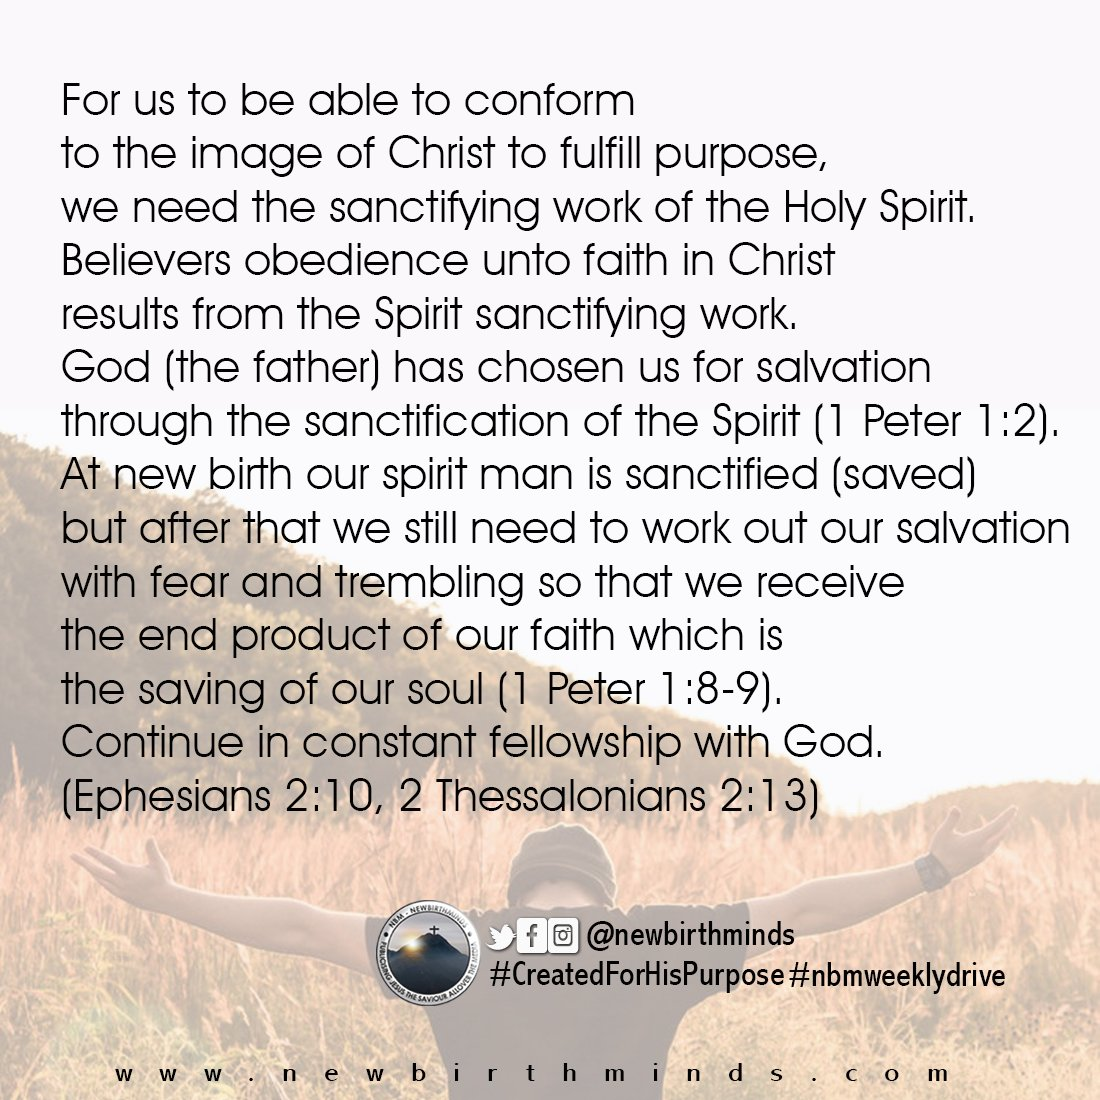 THIS WEEK DRIVE – THE SANCTIFYING WORK OF THE HOLY SPIRIT